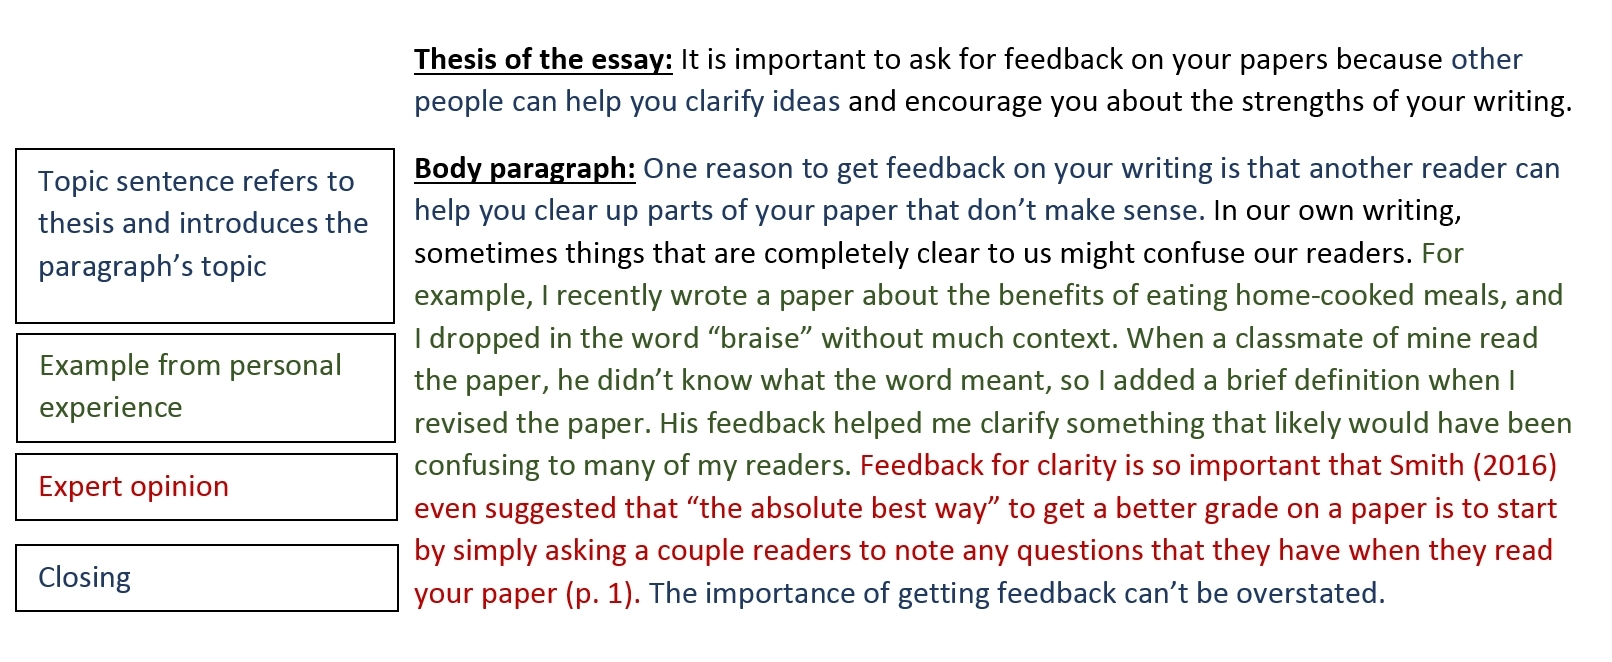 Body Paragraph Examples | World Of Example with Body Paragraph Examples 18841